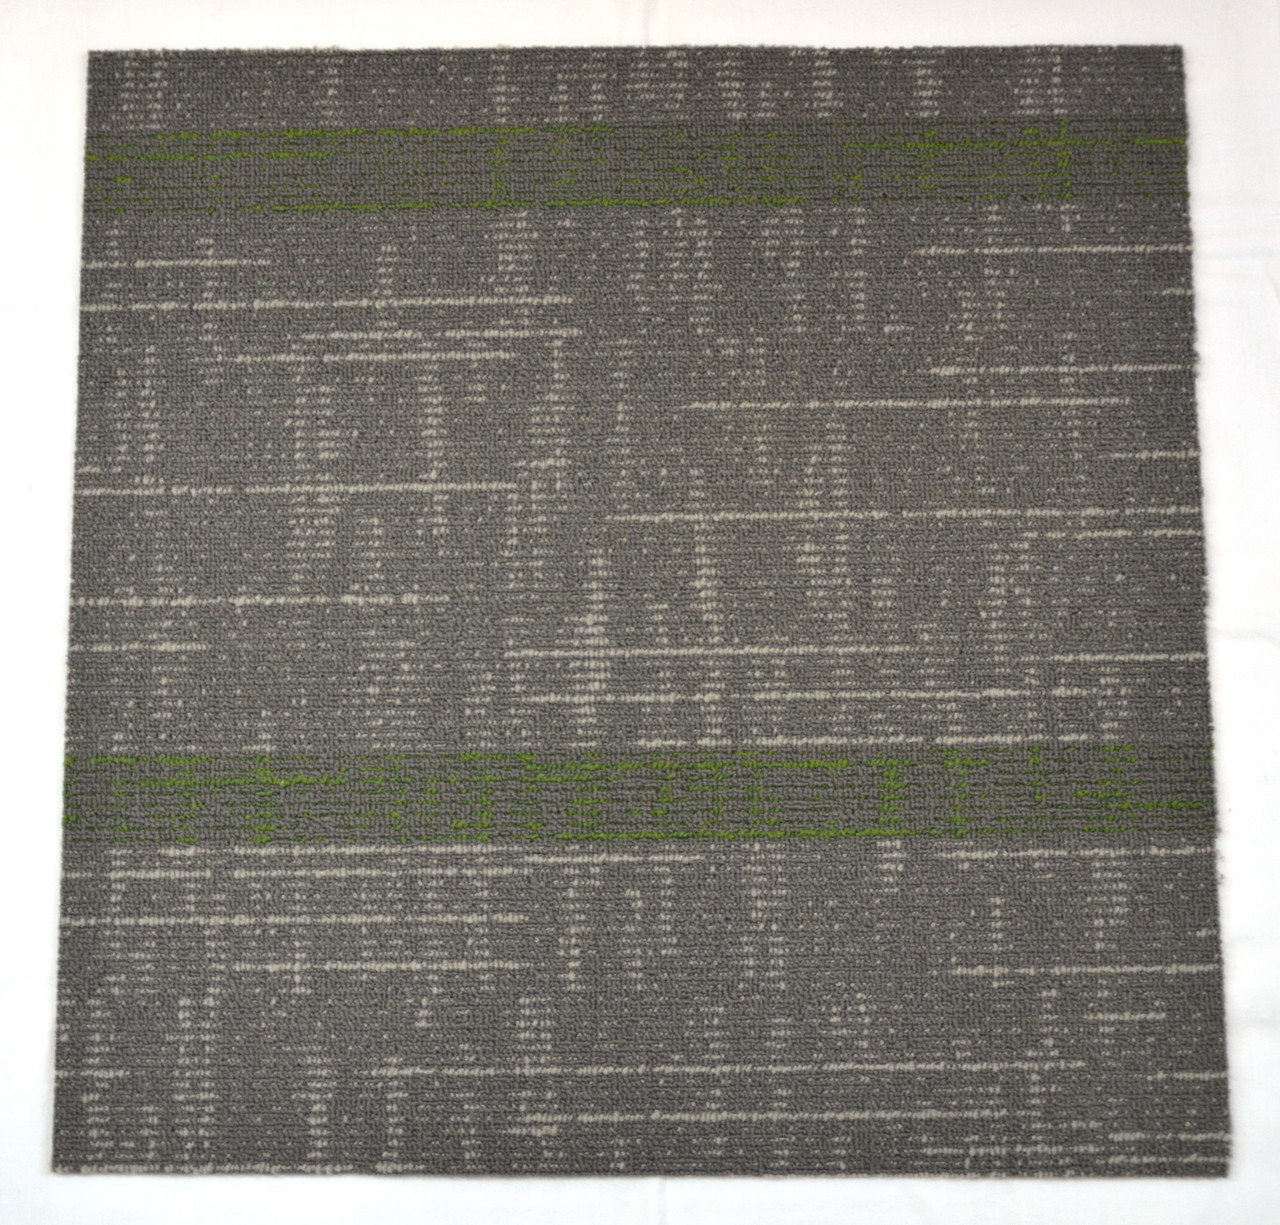 Dean Diy Carpet Tile Squares Gray Amp Green Patterned 48